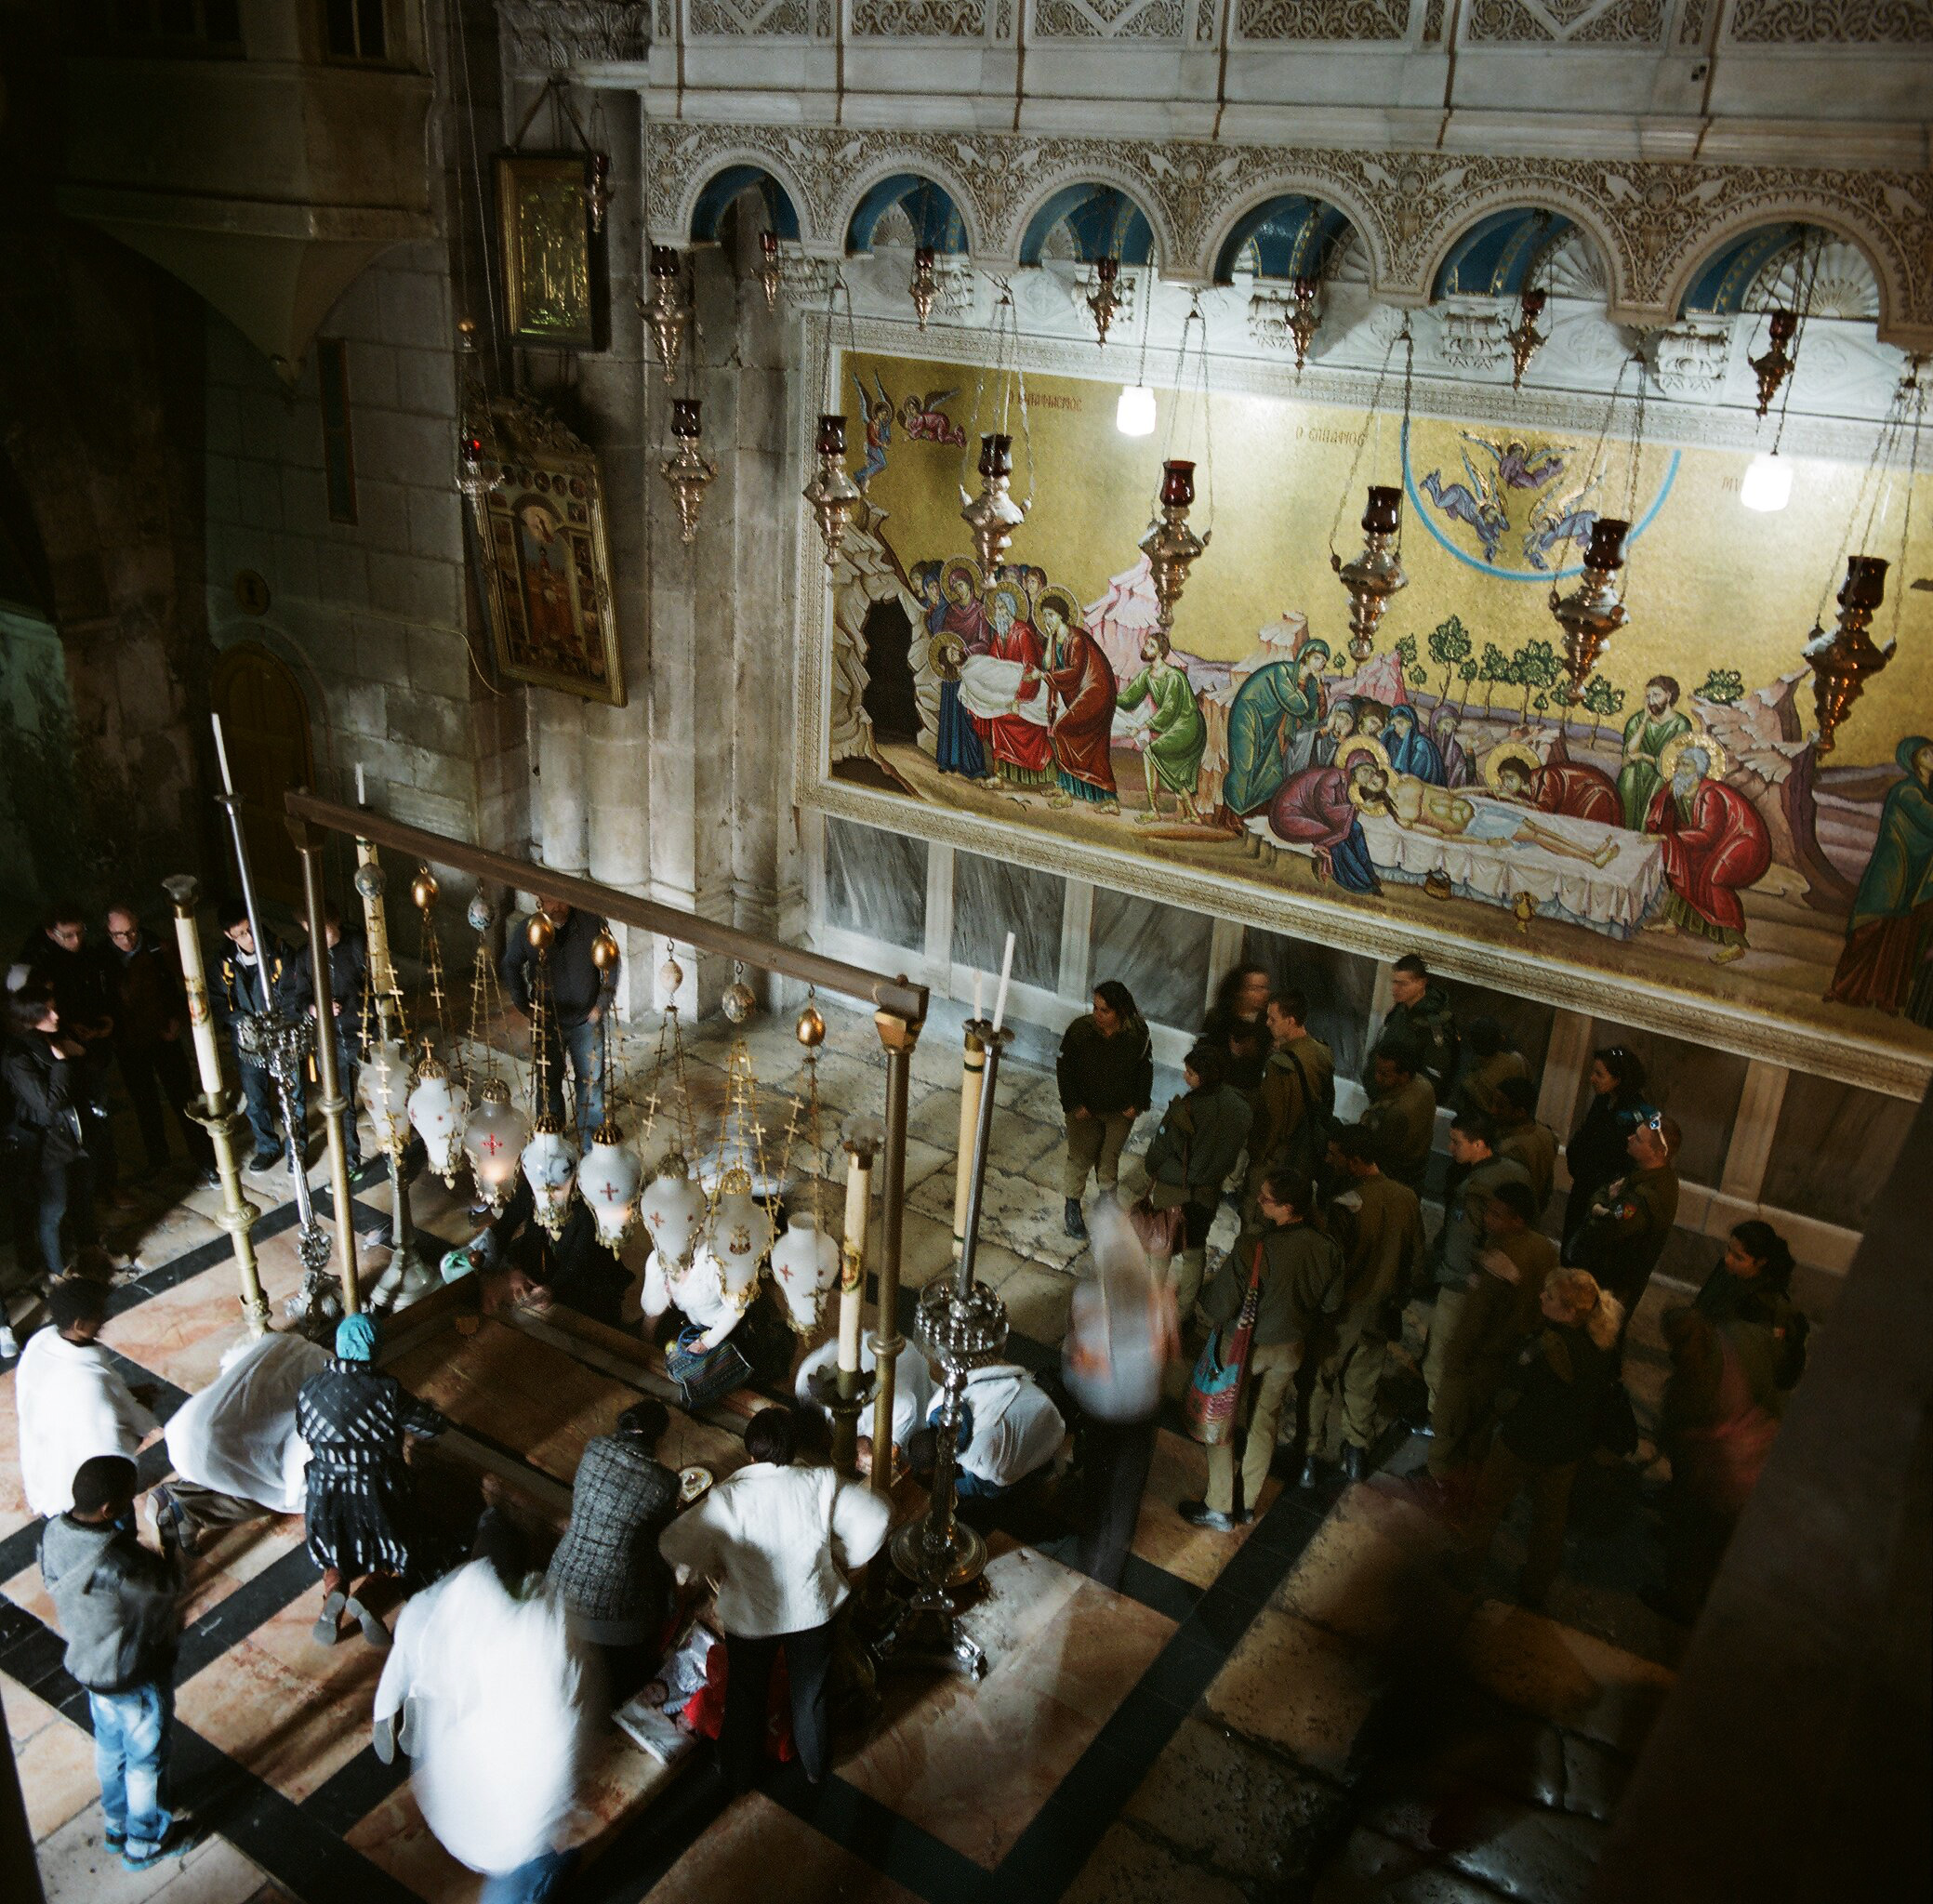 The Stone of Anointing in the Church of the Holy Sepulchre, Jerusalem, Israel.